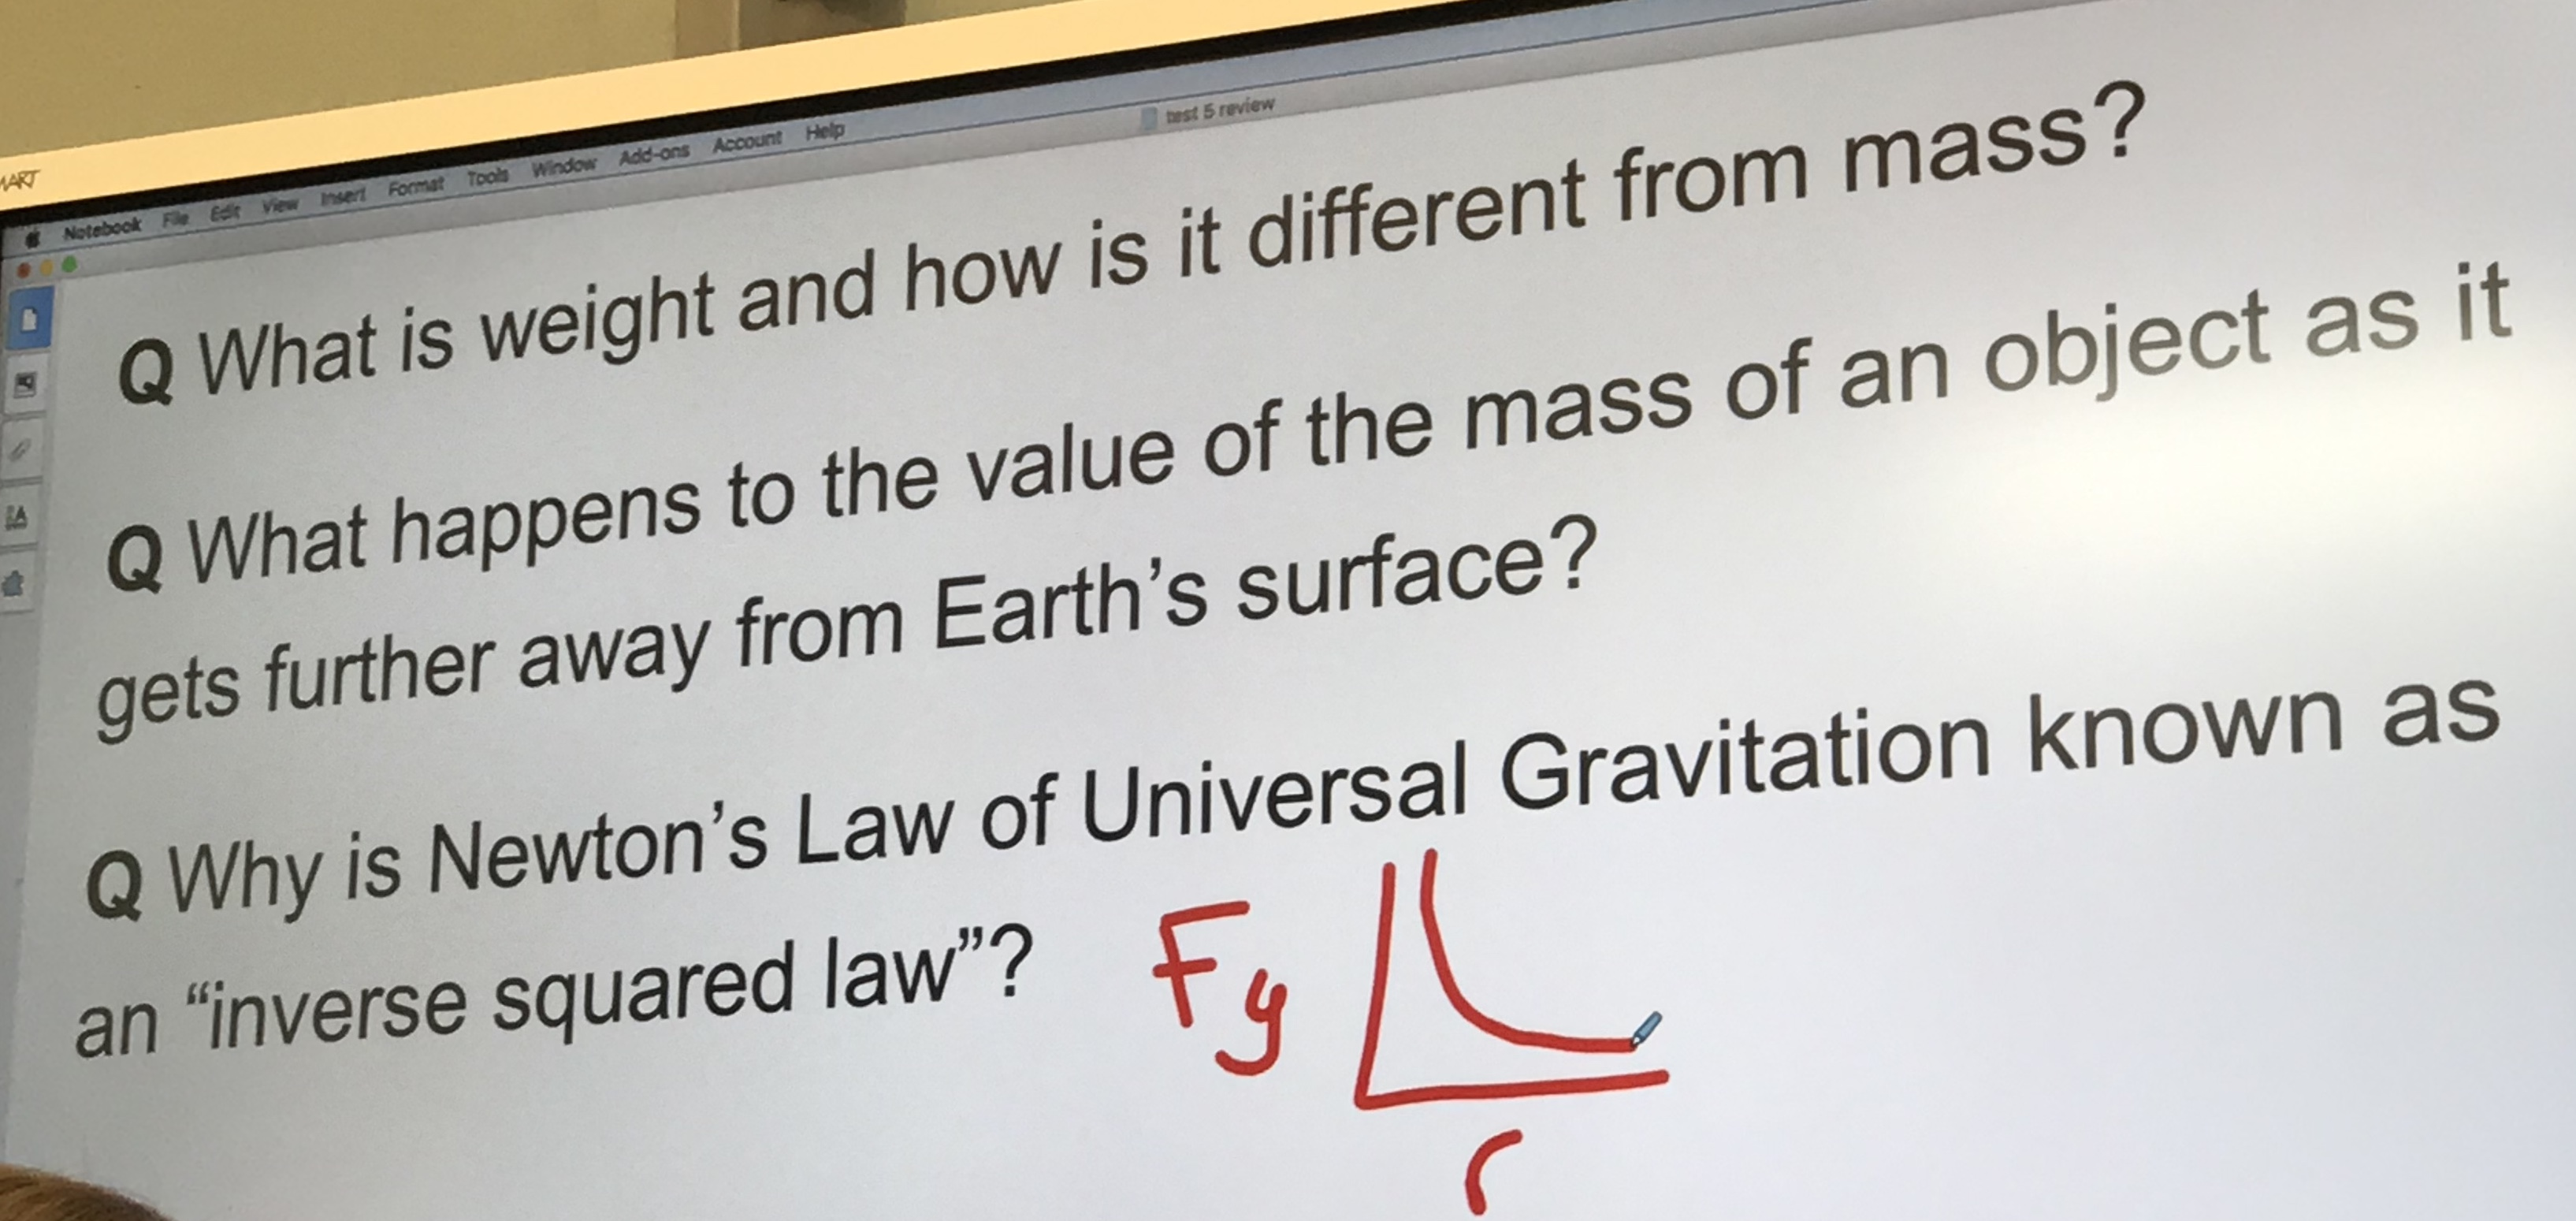 "MART Notebook File Edt View Insert Format Tools Window Add-ons Account Help best 5 review Q What is weight and how is it different from mass? Q What happens to the value of the mass of an object as it gets further away from Earth's surface? Q Why is Newton's Law of Universal Gravitation known as an ""inverse squared law""?"